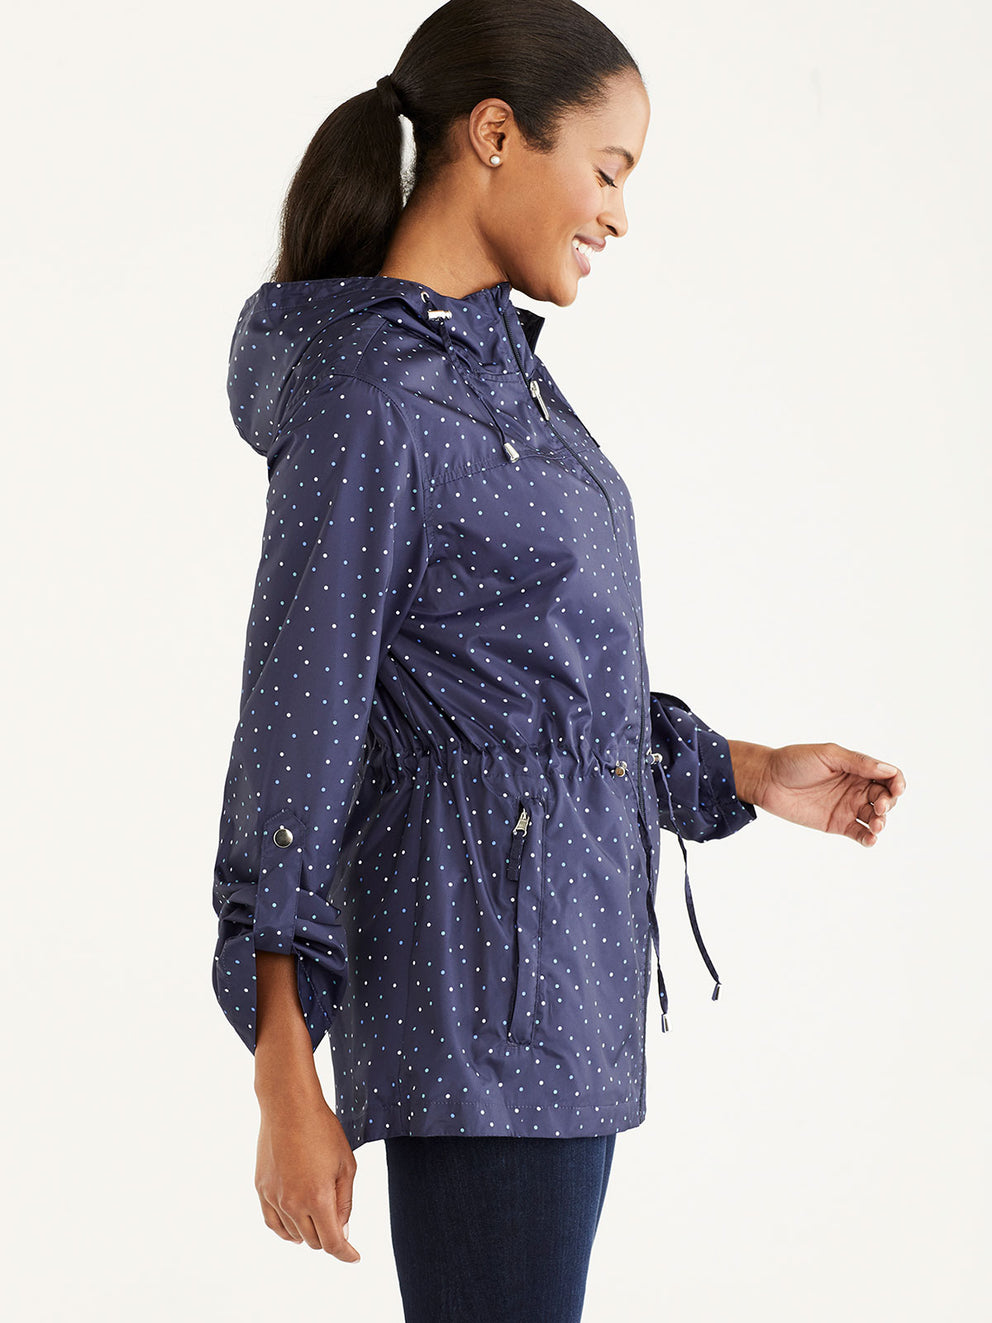 The Jones New York Packable Rain Jacket in color Navy Dots - Image Position 2